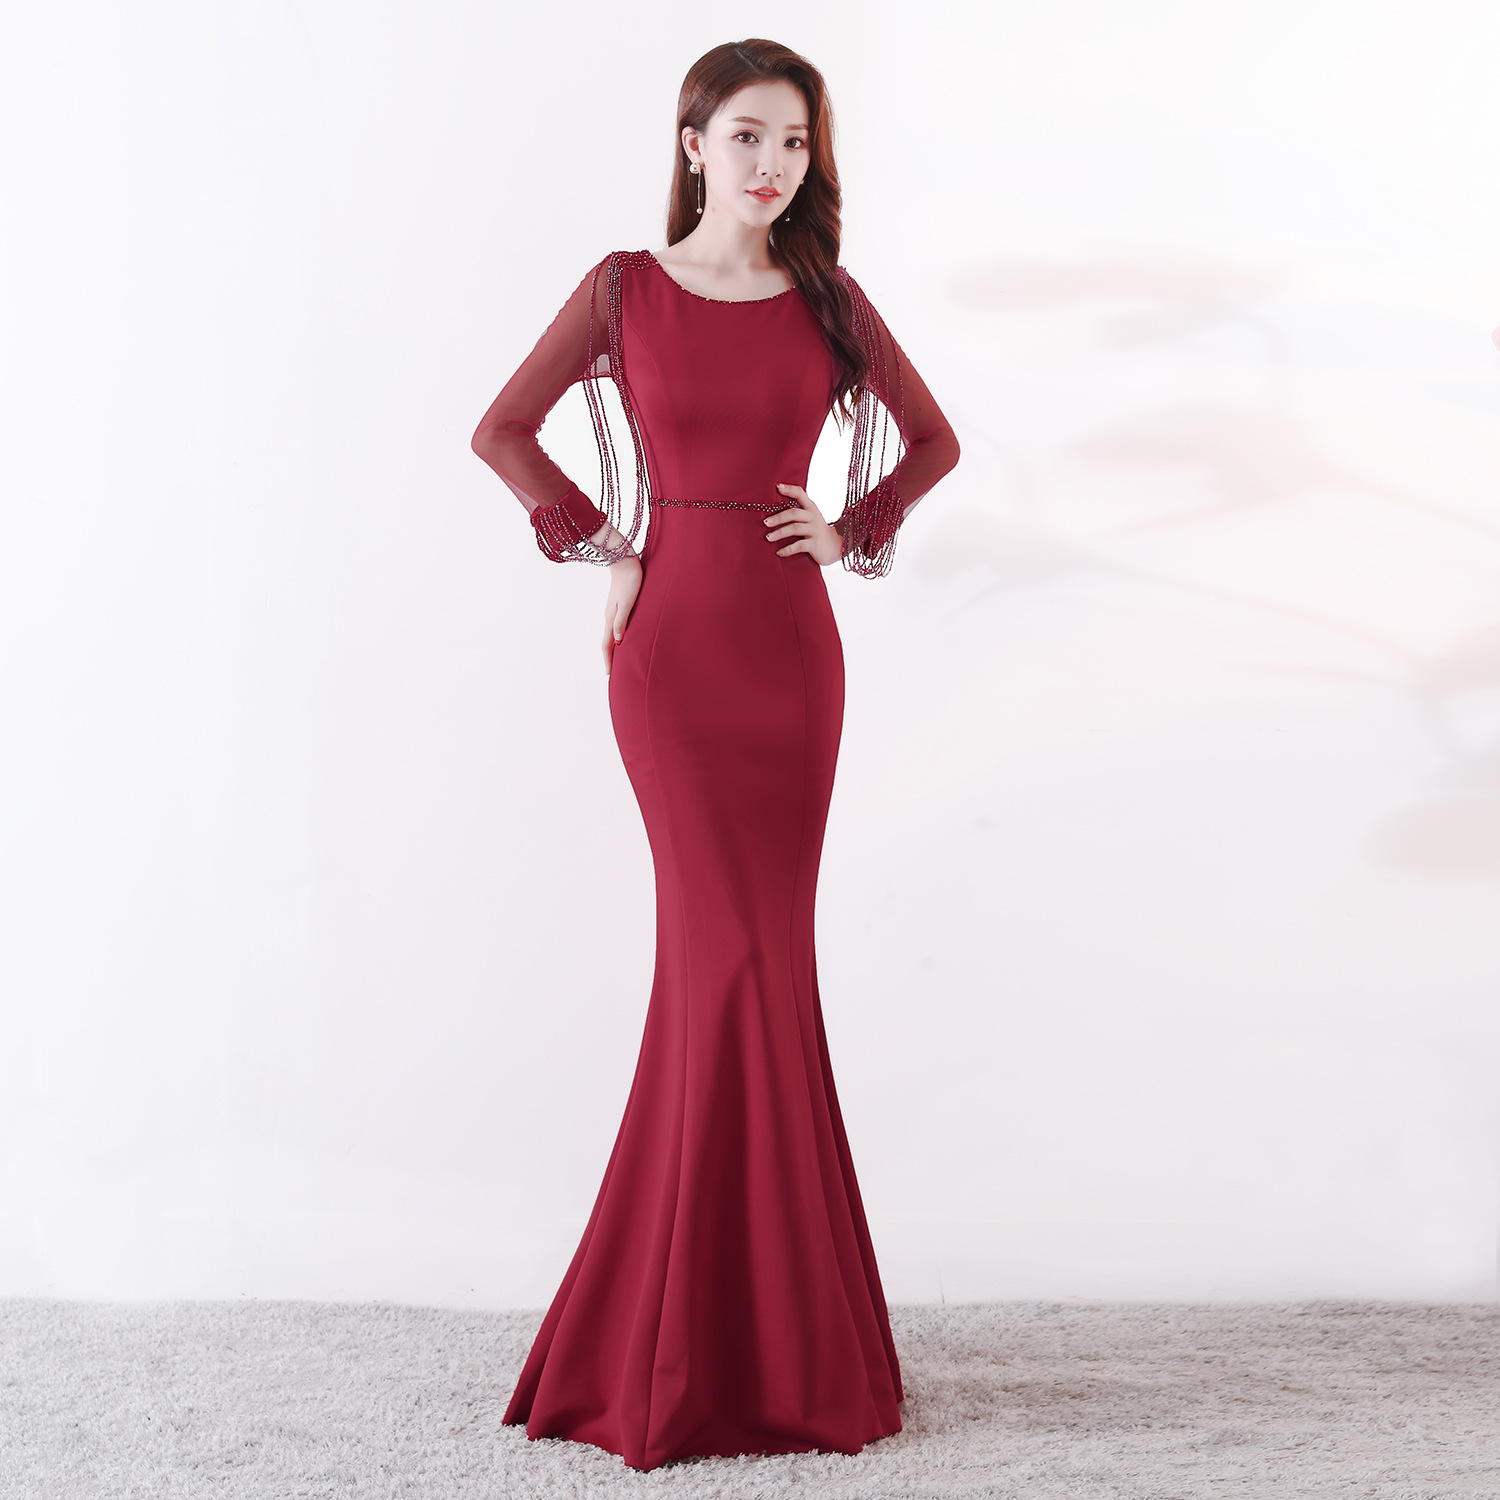 Corzzet Elegant Celebrity Party Mermaid Slim Dress Vestidos Wine Red Long Sleeved Rhinestone Chain Fishtail Long Party Dress